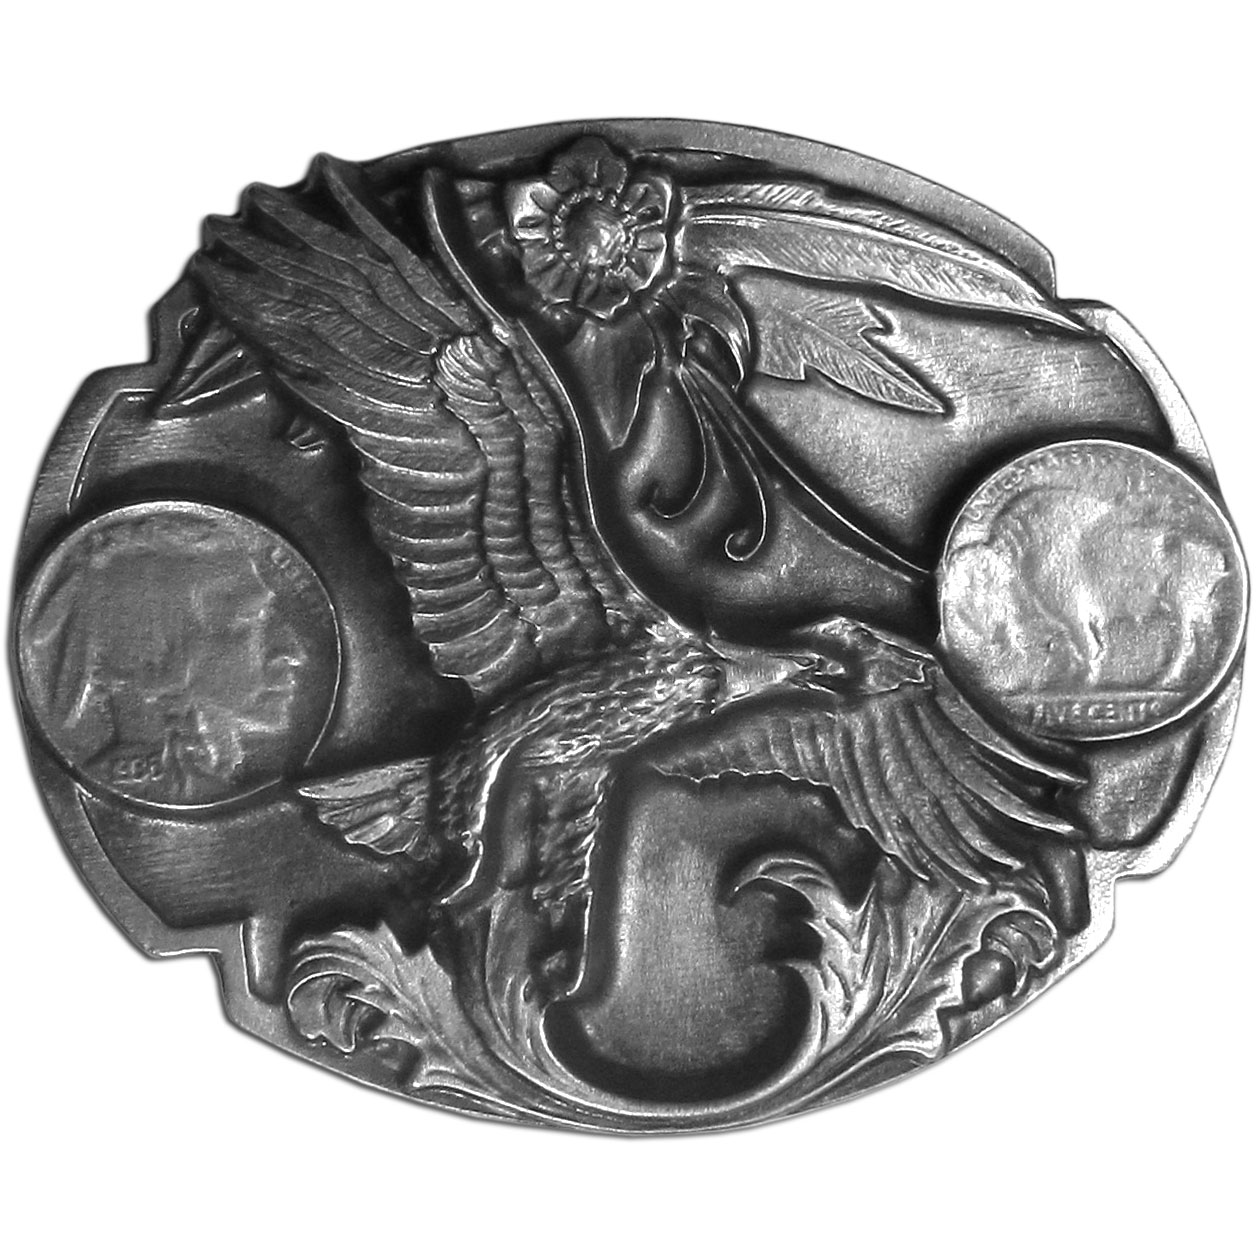 "Indian Nickel with Eagle Antiqued Belt Buckle - ""This belt buckle features an Indian Nickel, the front on one side and the back on the other.  In the center is an eagle soaring through the sky, there is also flowers and other design detail.  This exquisitely carved buckle is made of fully cast metal with a standard bale that fits up to 2"""" belts."""